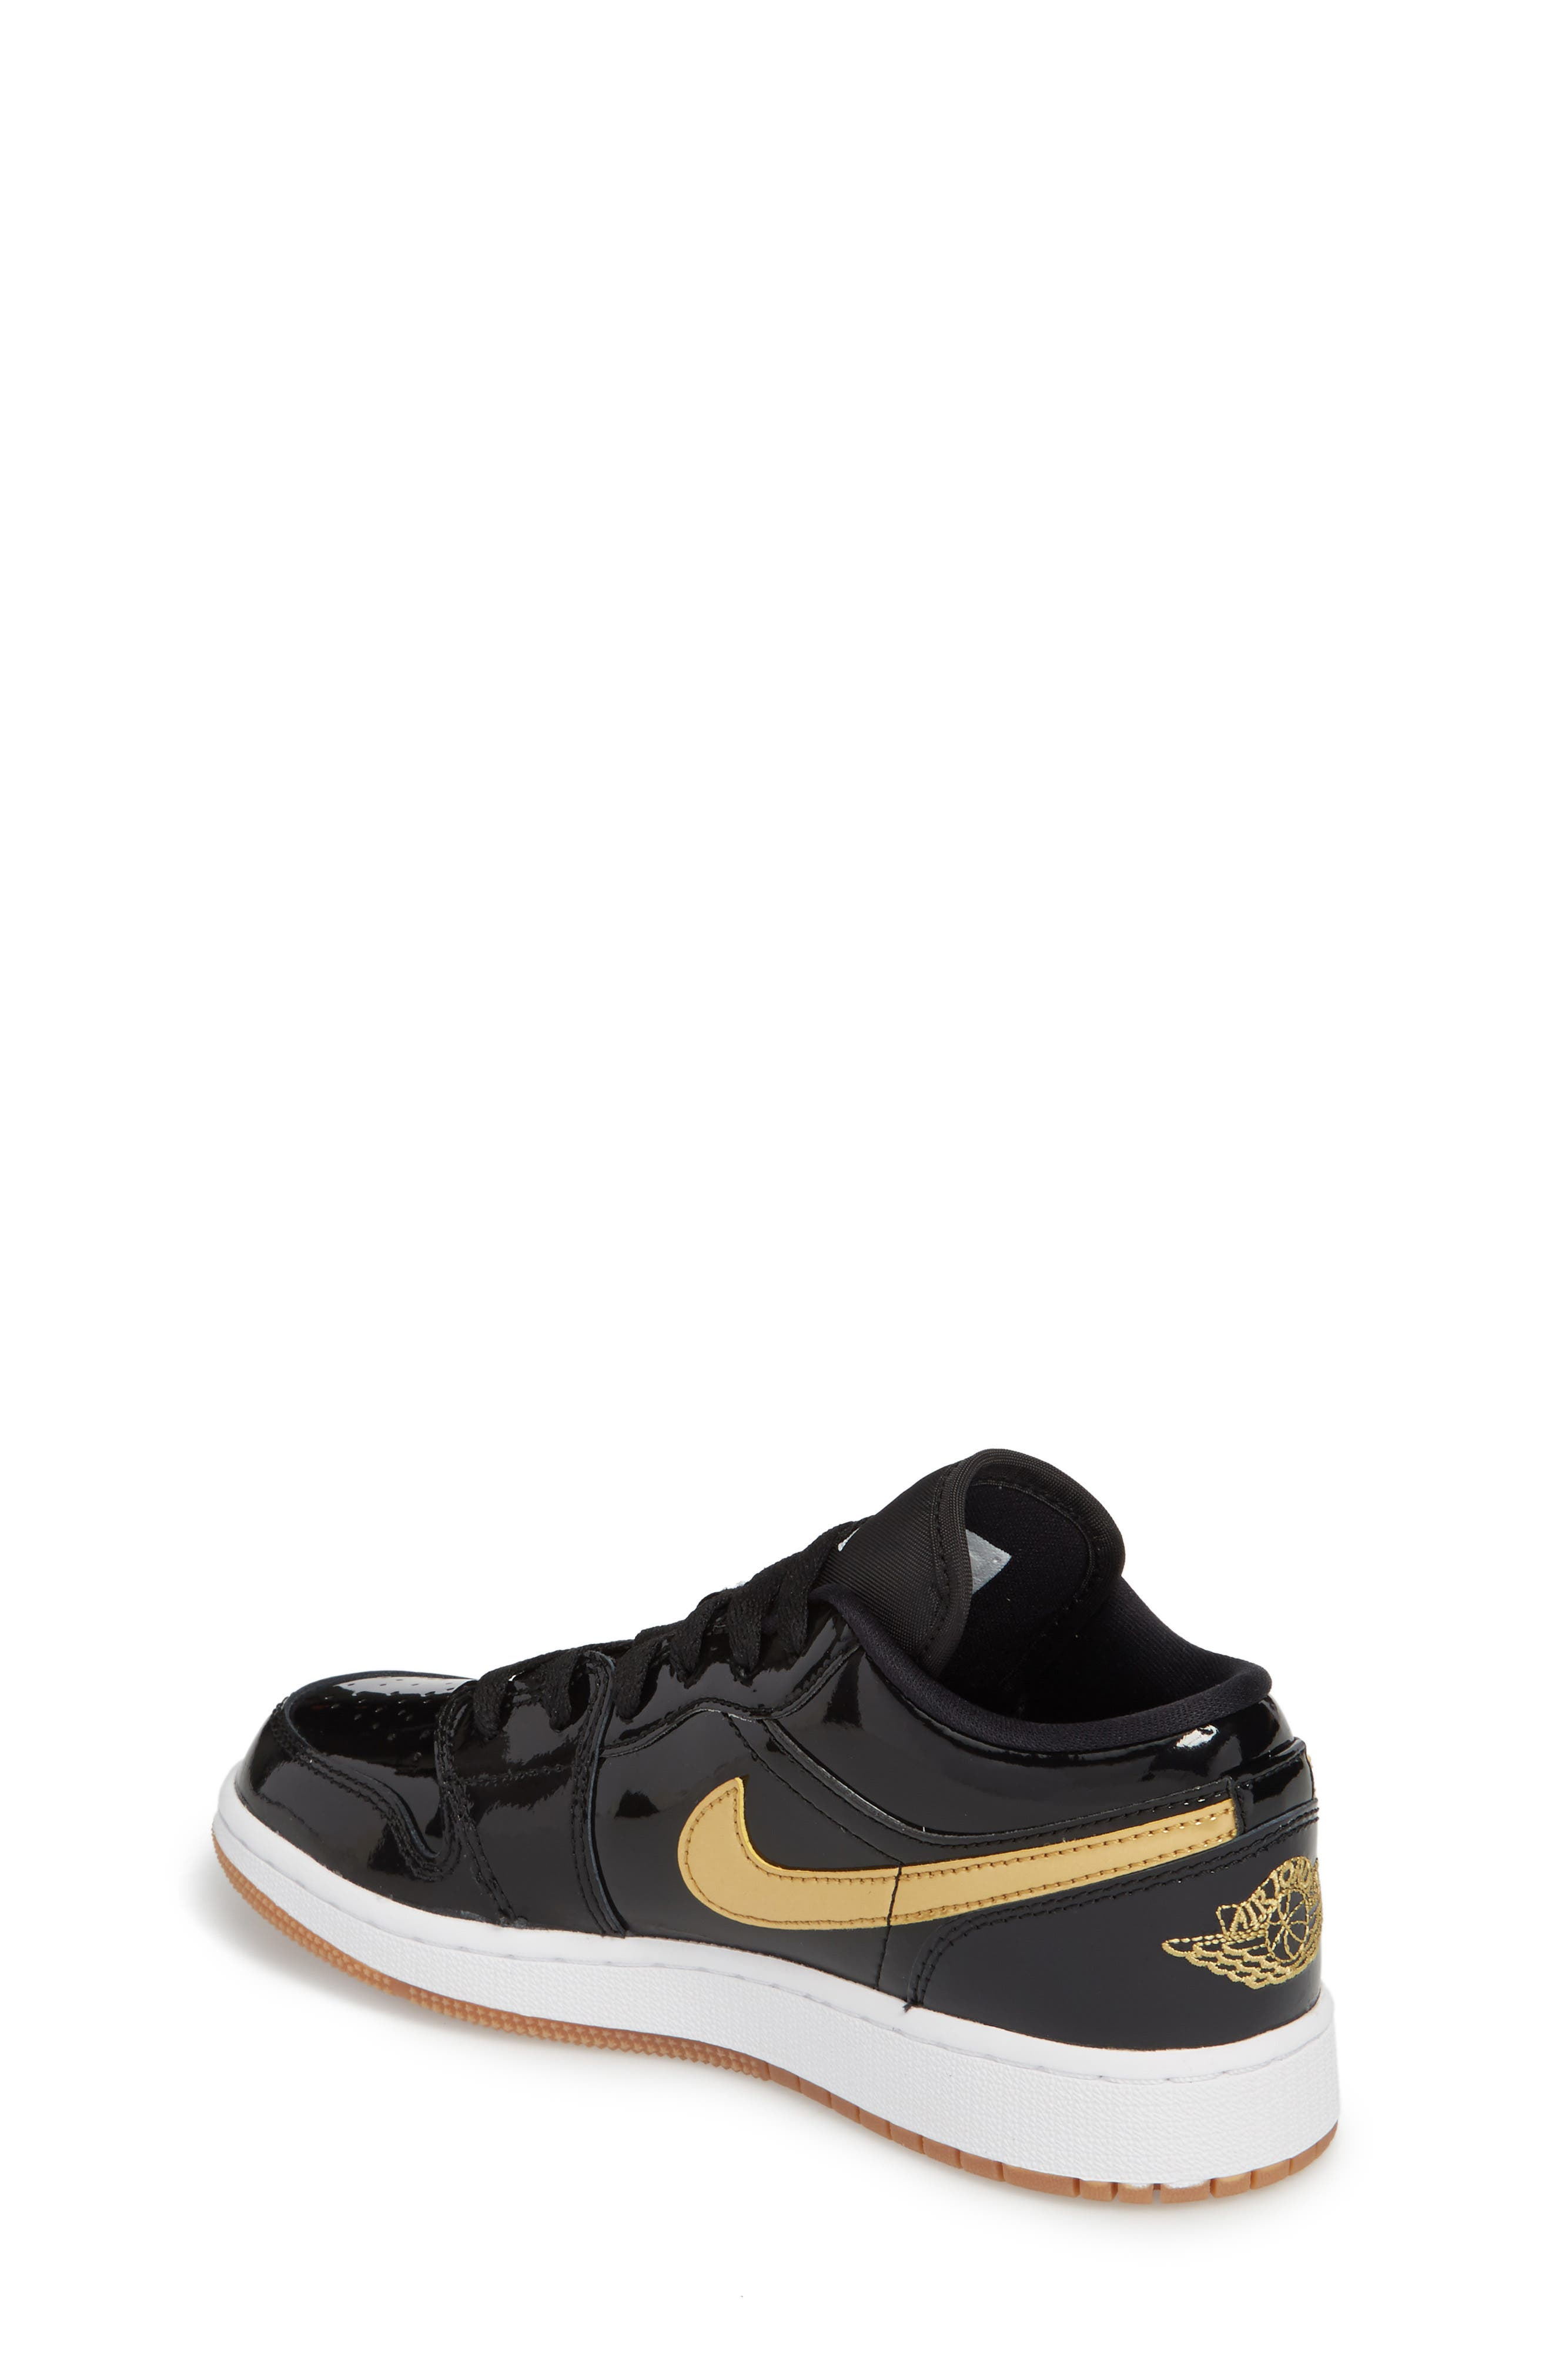 Nike 'Jordan 1 Low' Basketball Shoe,                             Alternate thumbnail 3, color,